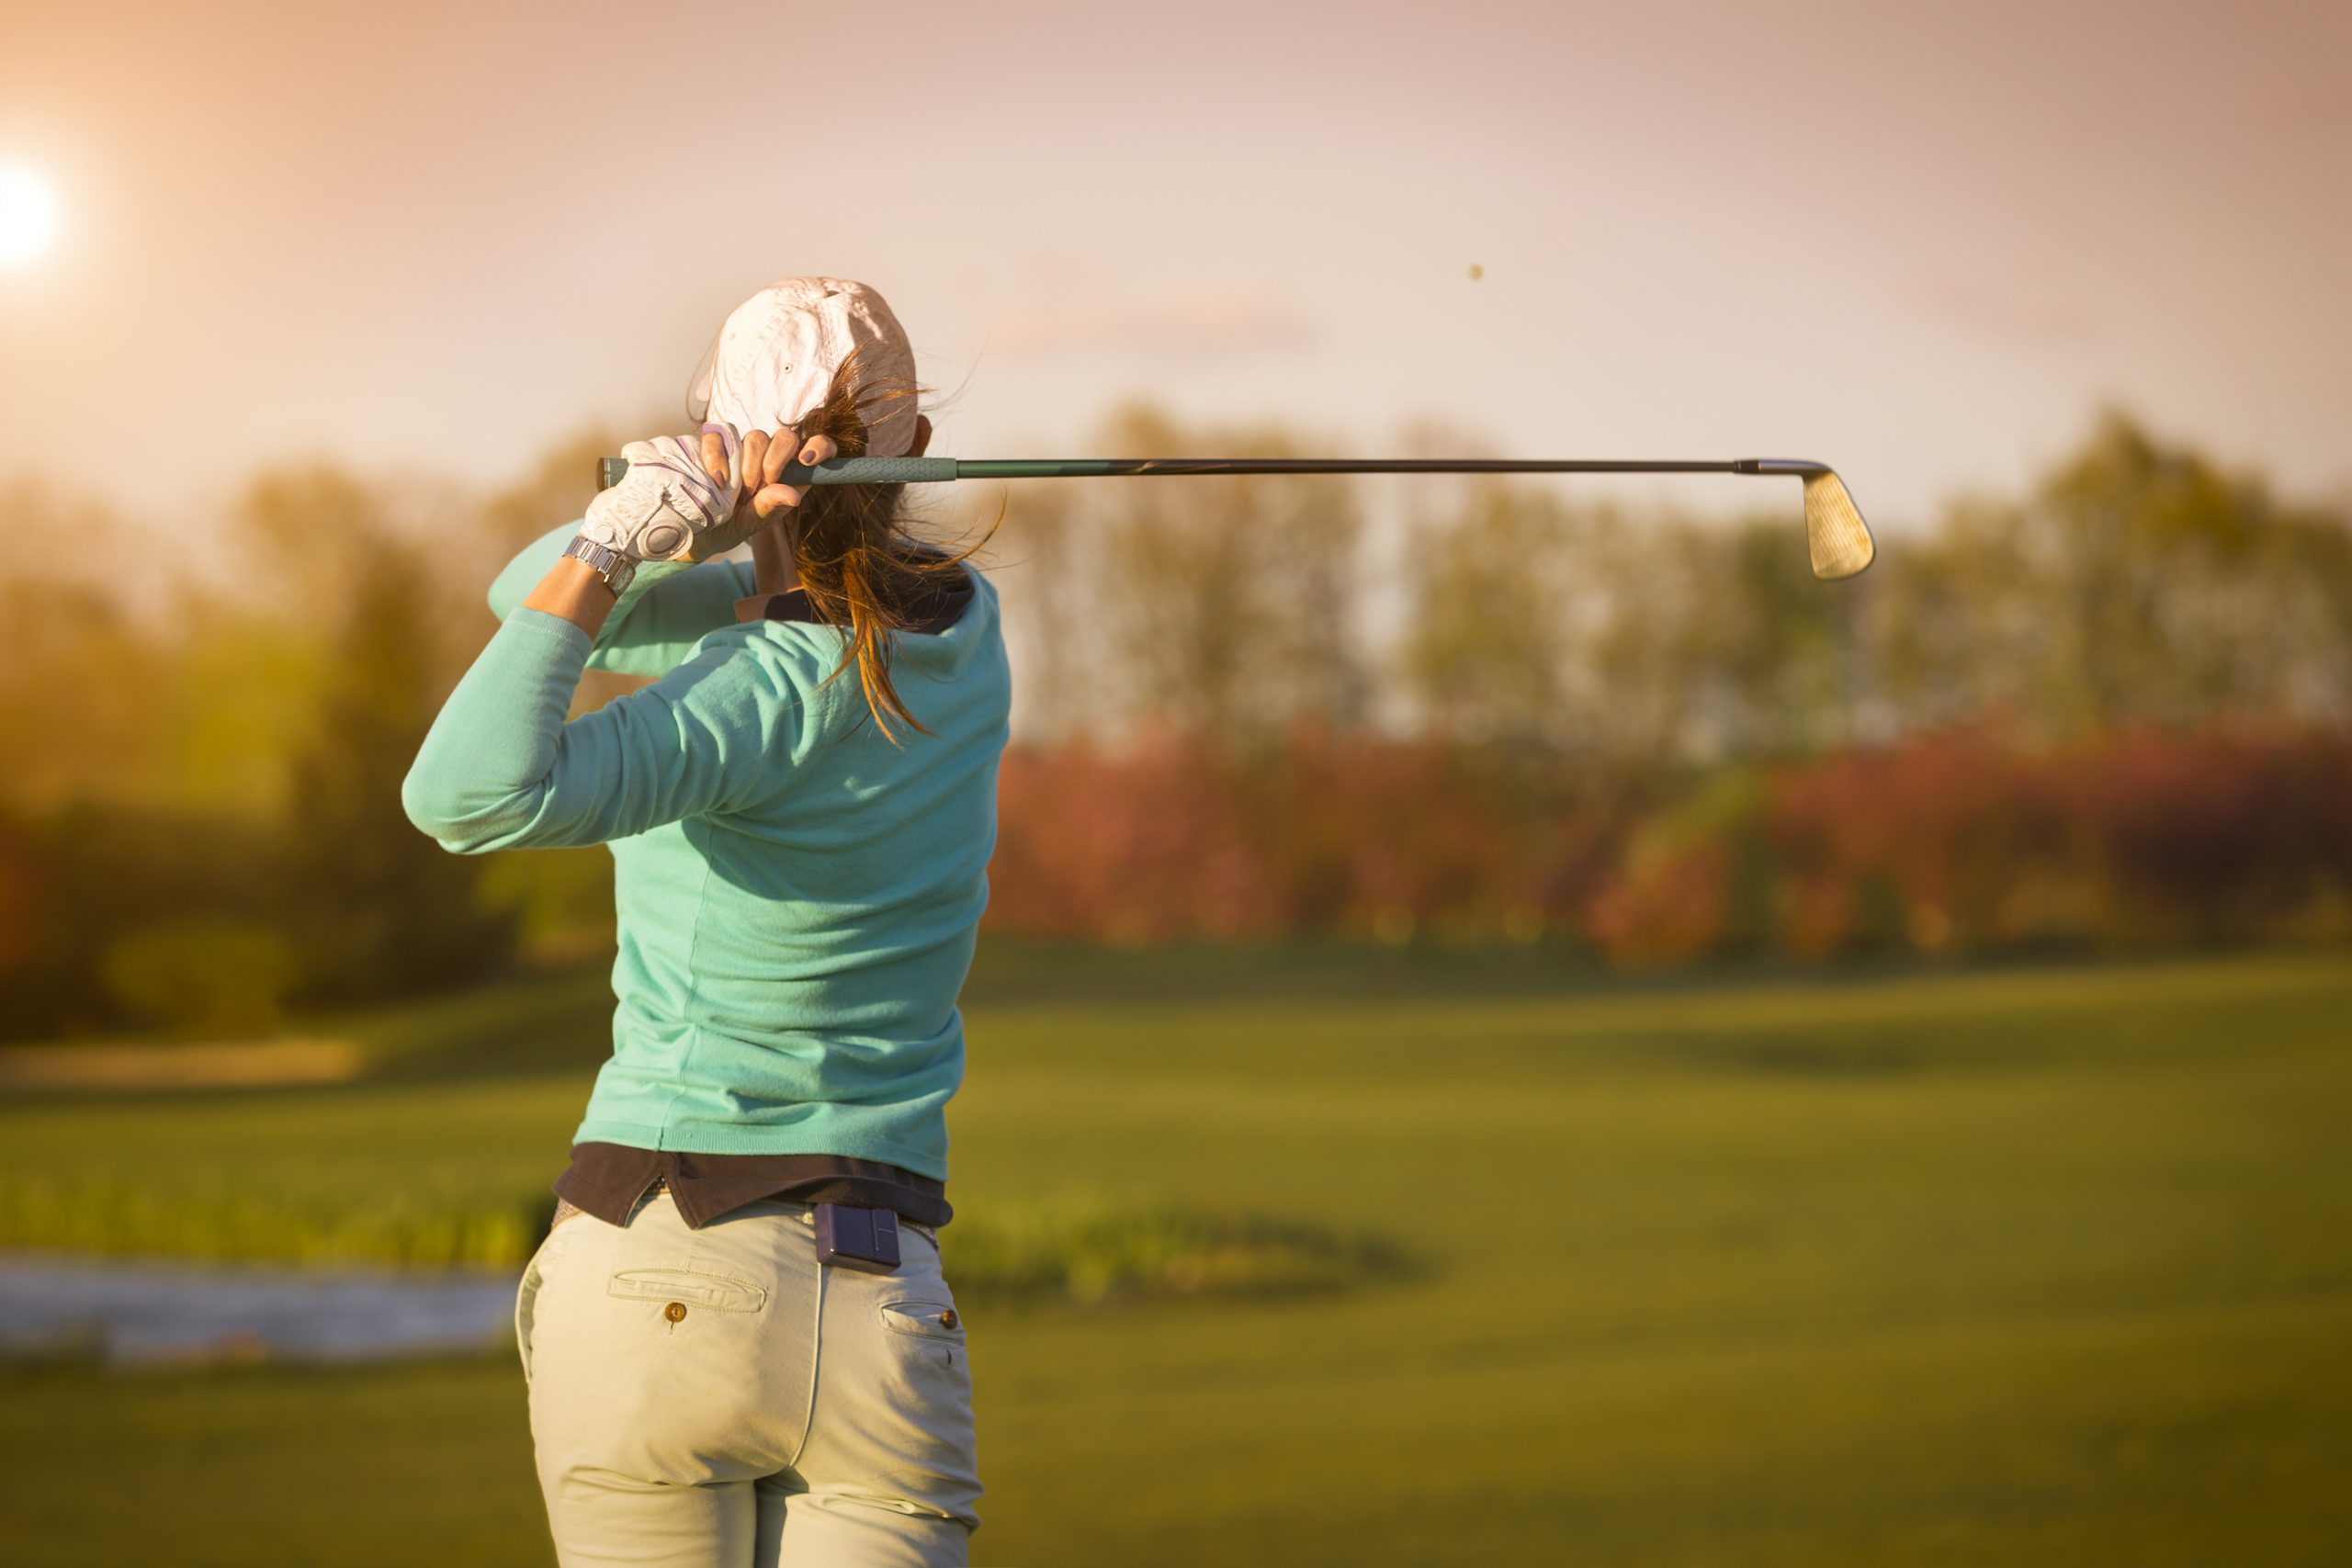 woman on golf course after swinging her club